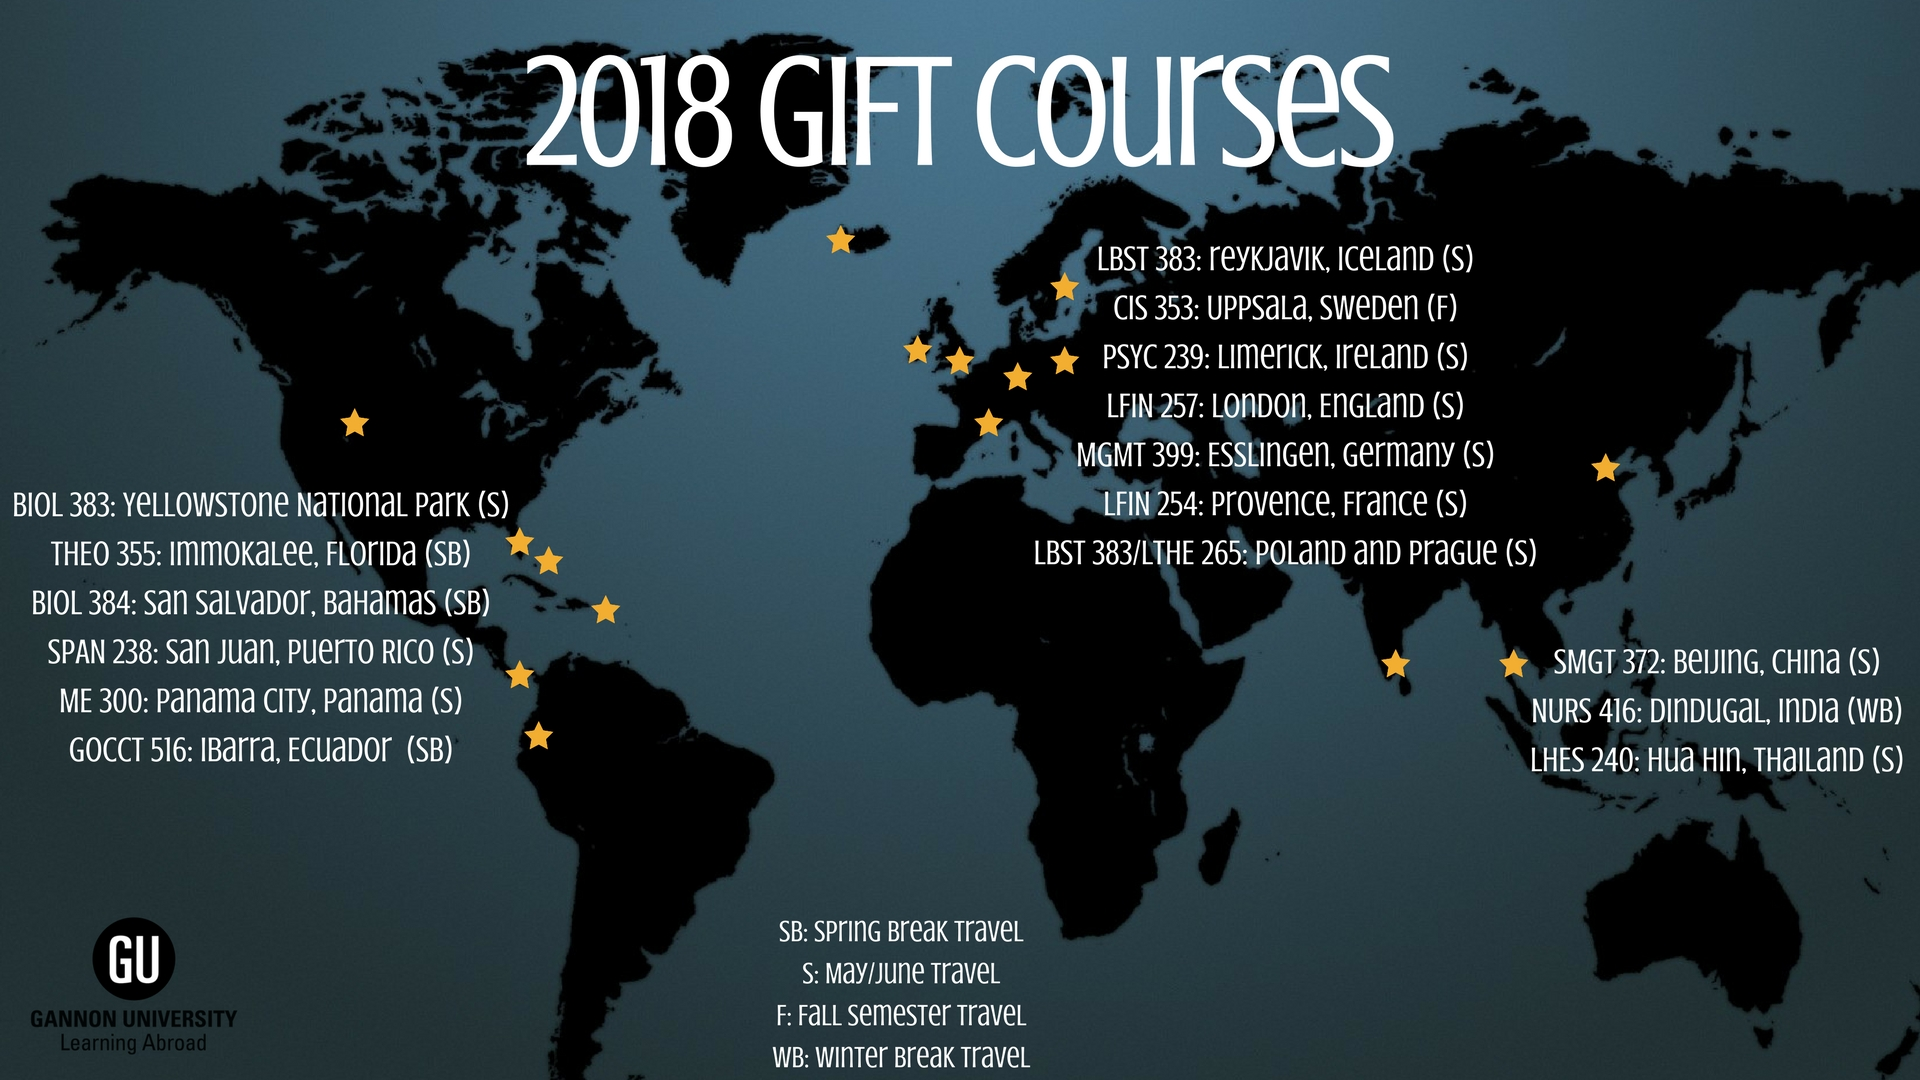 2018 GIFT Courses